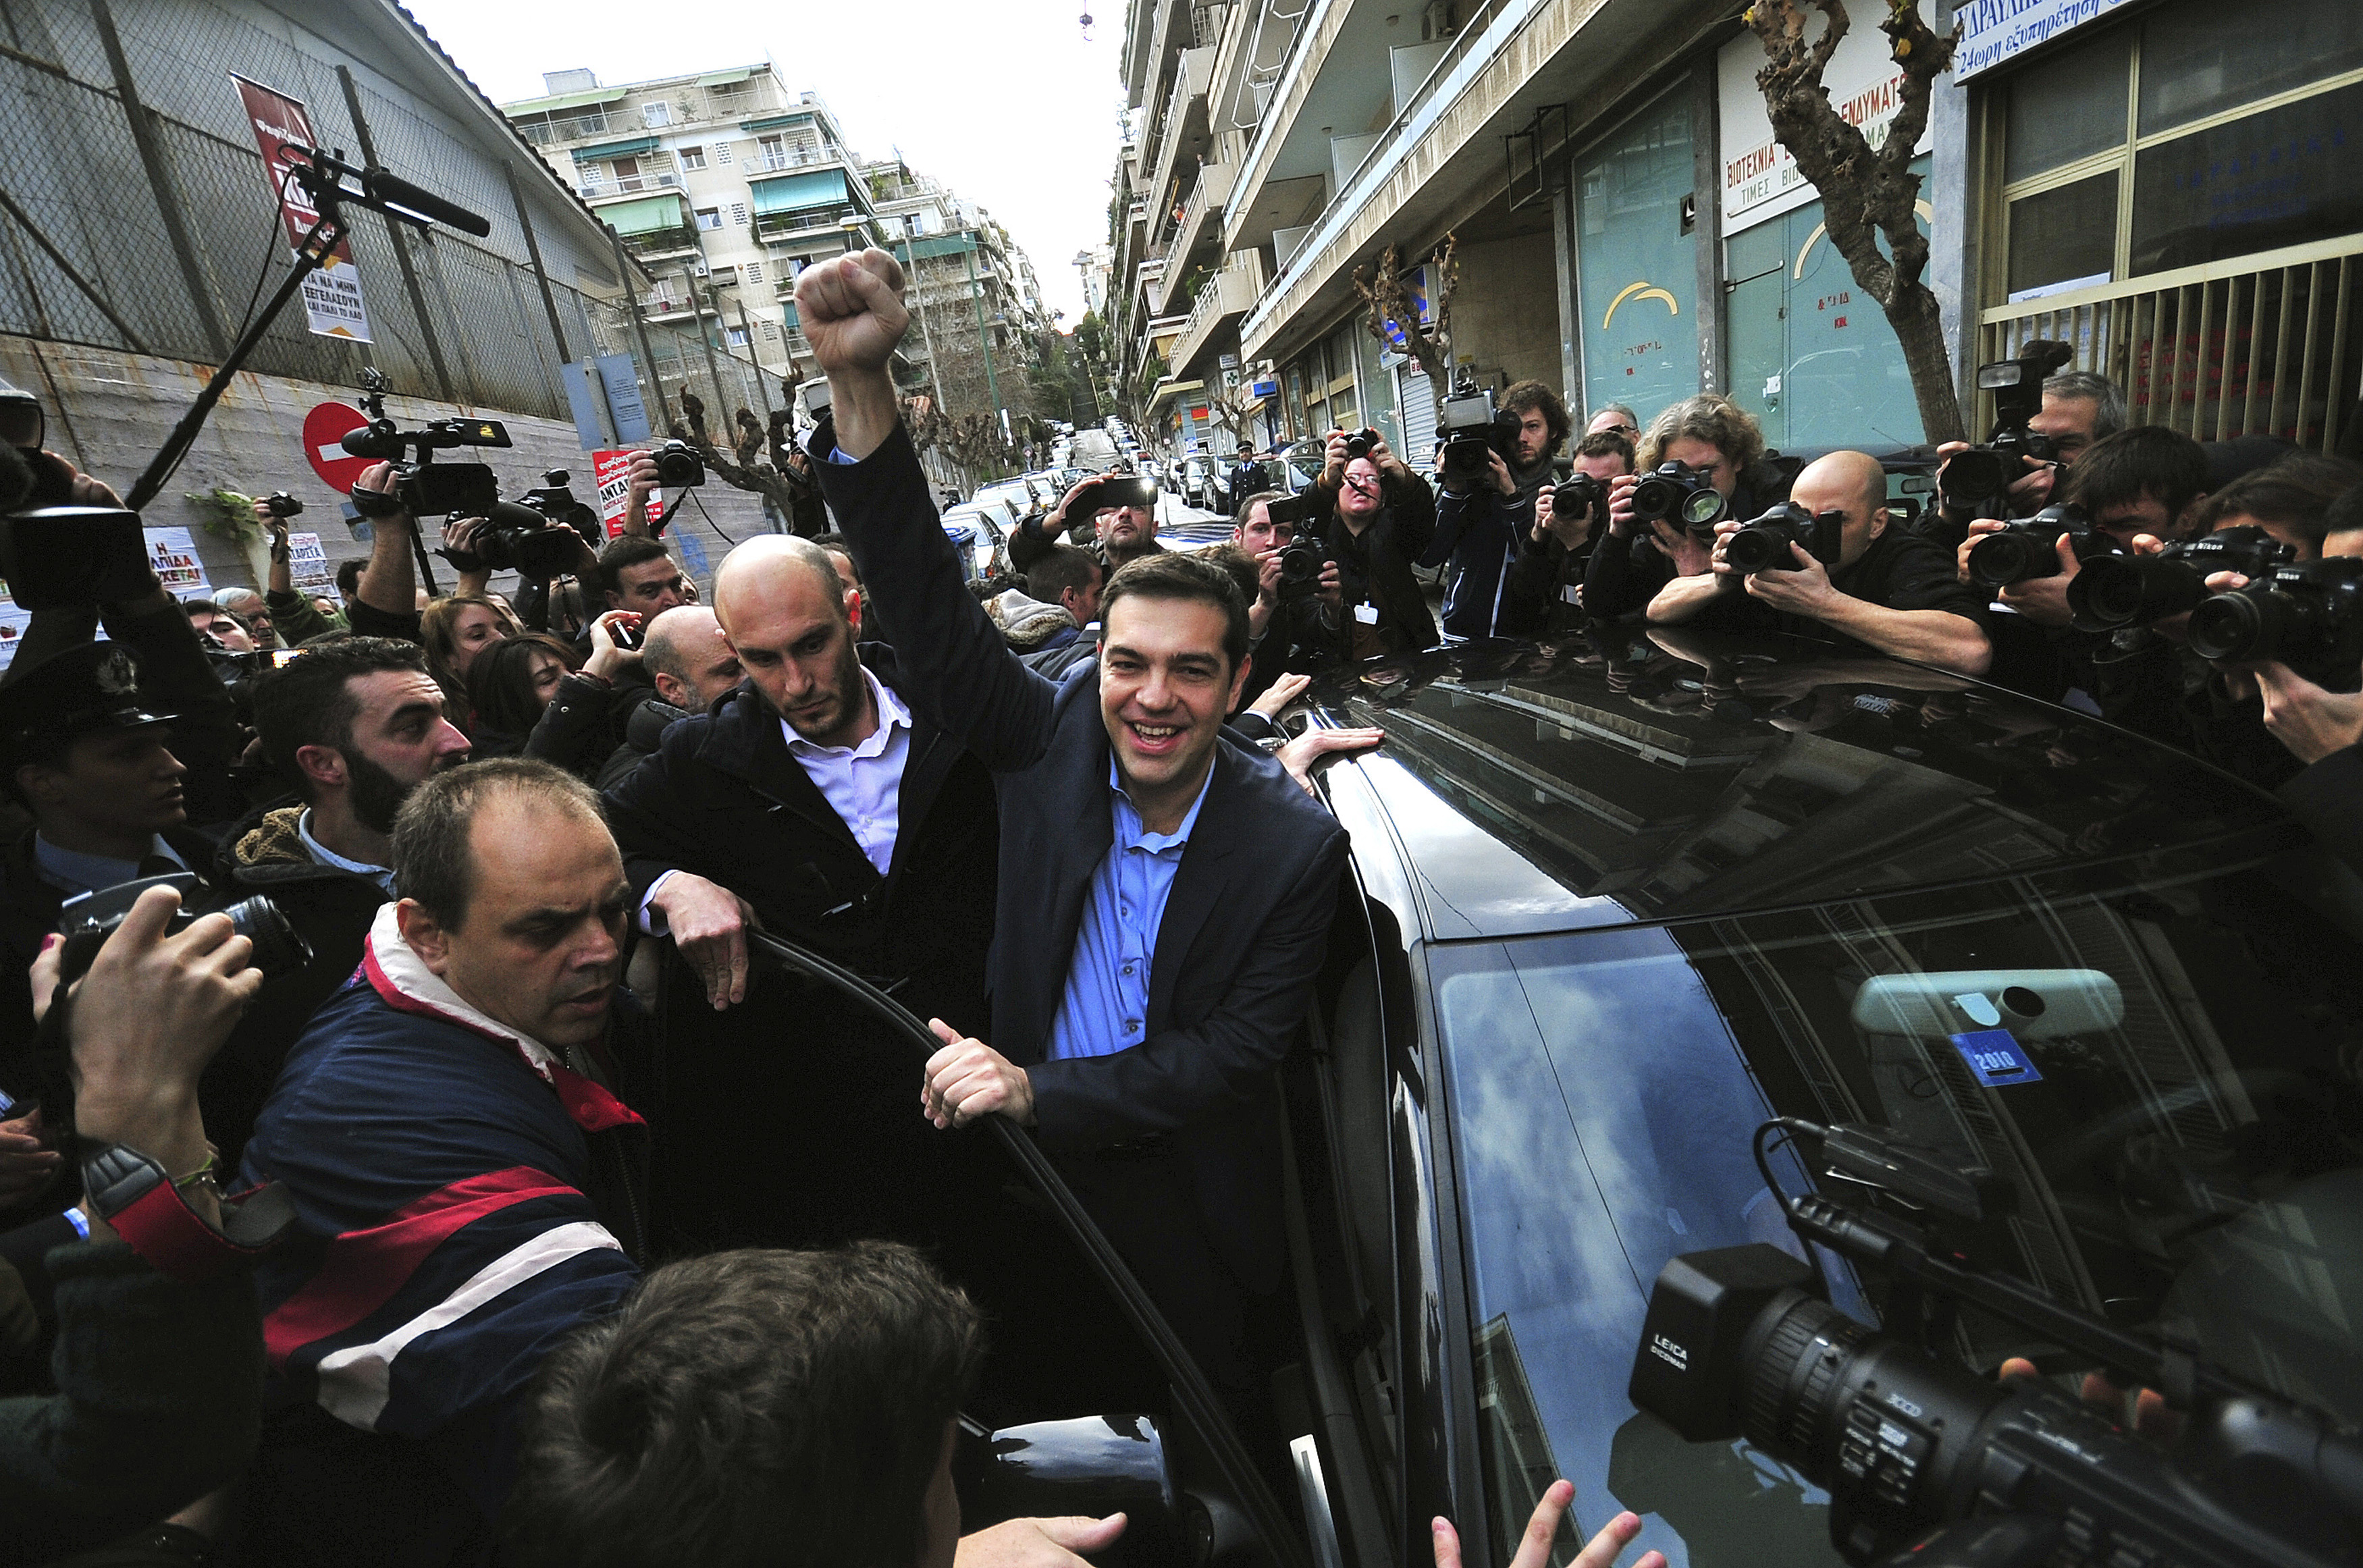 Opposition leader and head of radical leftist Syriza party Alexis Tsipras raises his fist as he leaves a polling station where he voted in Athens